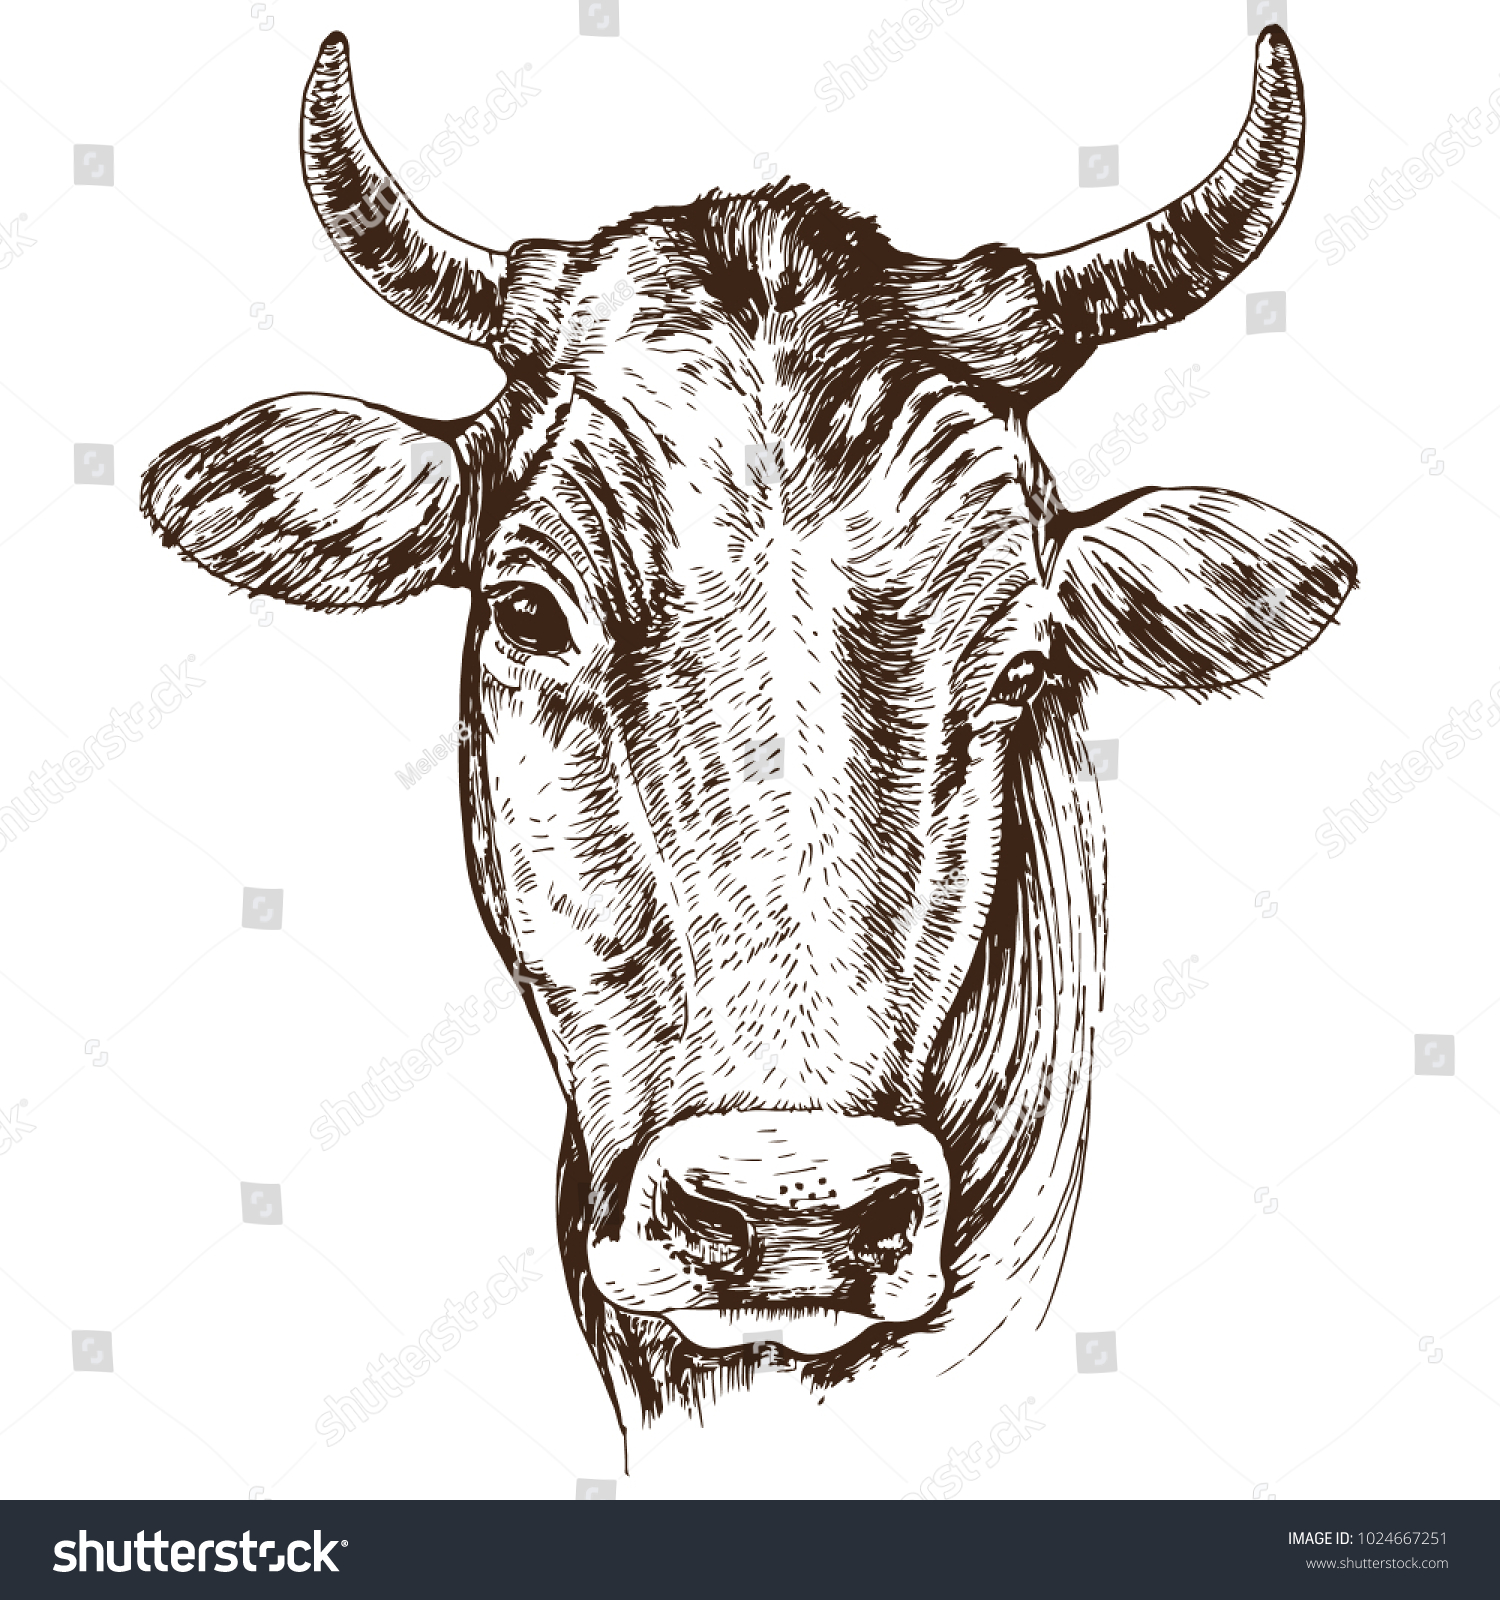 Hand Drawn Cow Head Isolated On Stock Vector 1024667251 - Shutterstock